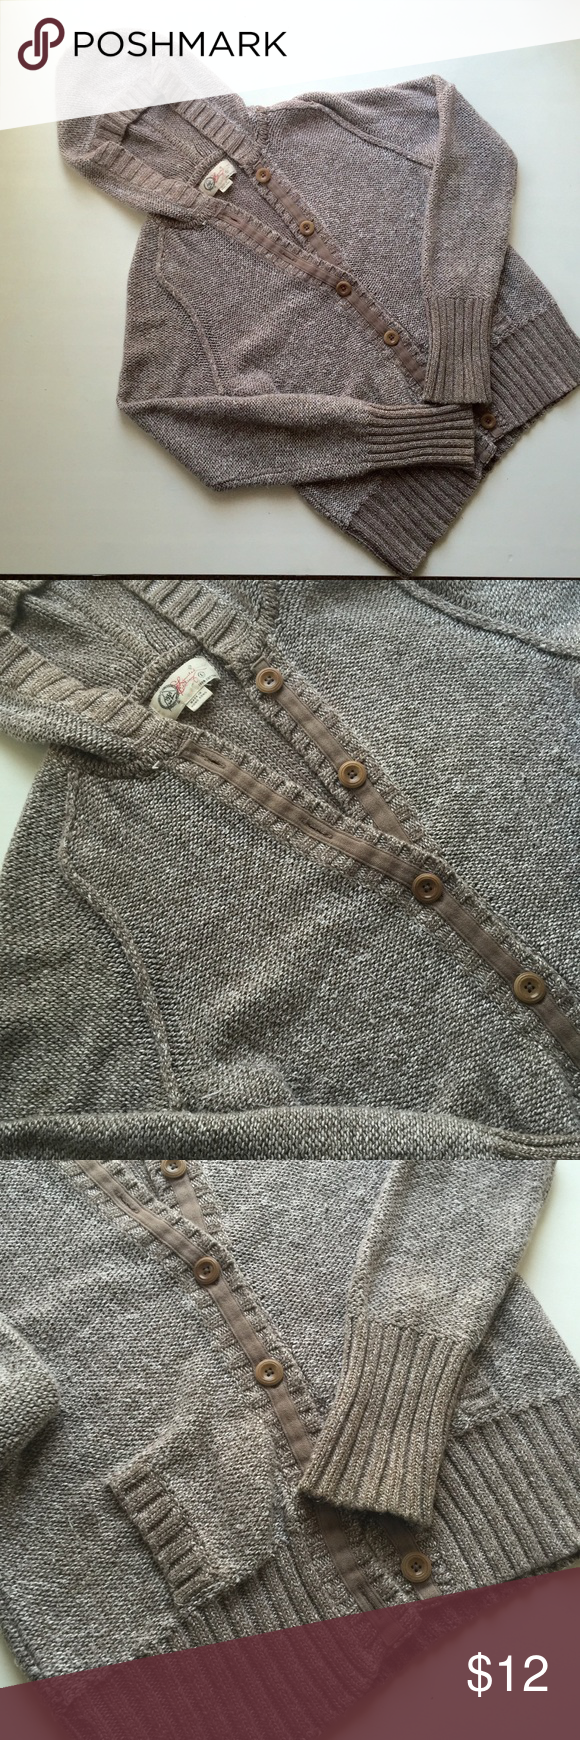 Gap Limited Edition Cardigan Chunky hooded cardigan, perfect for ...